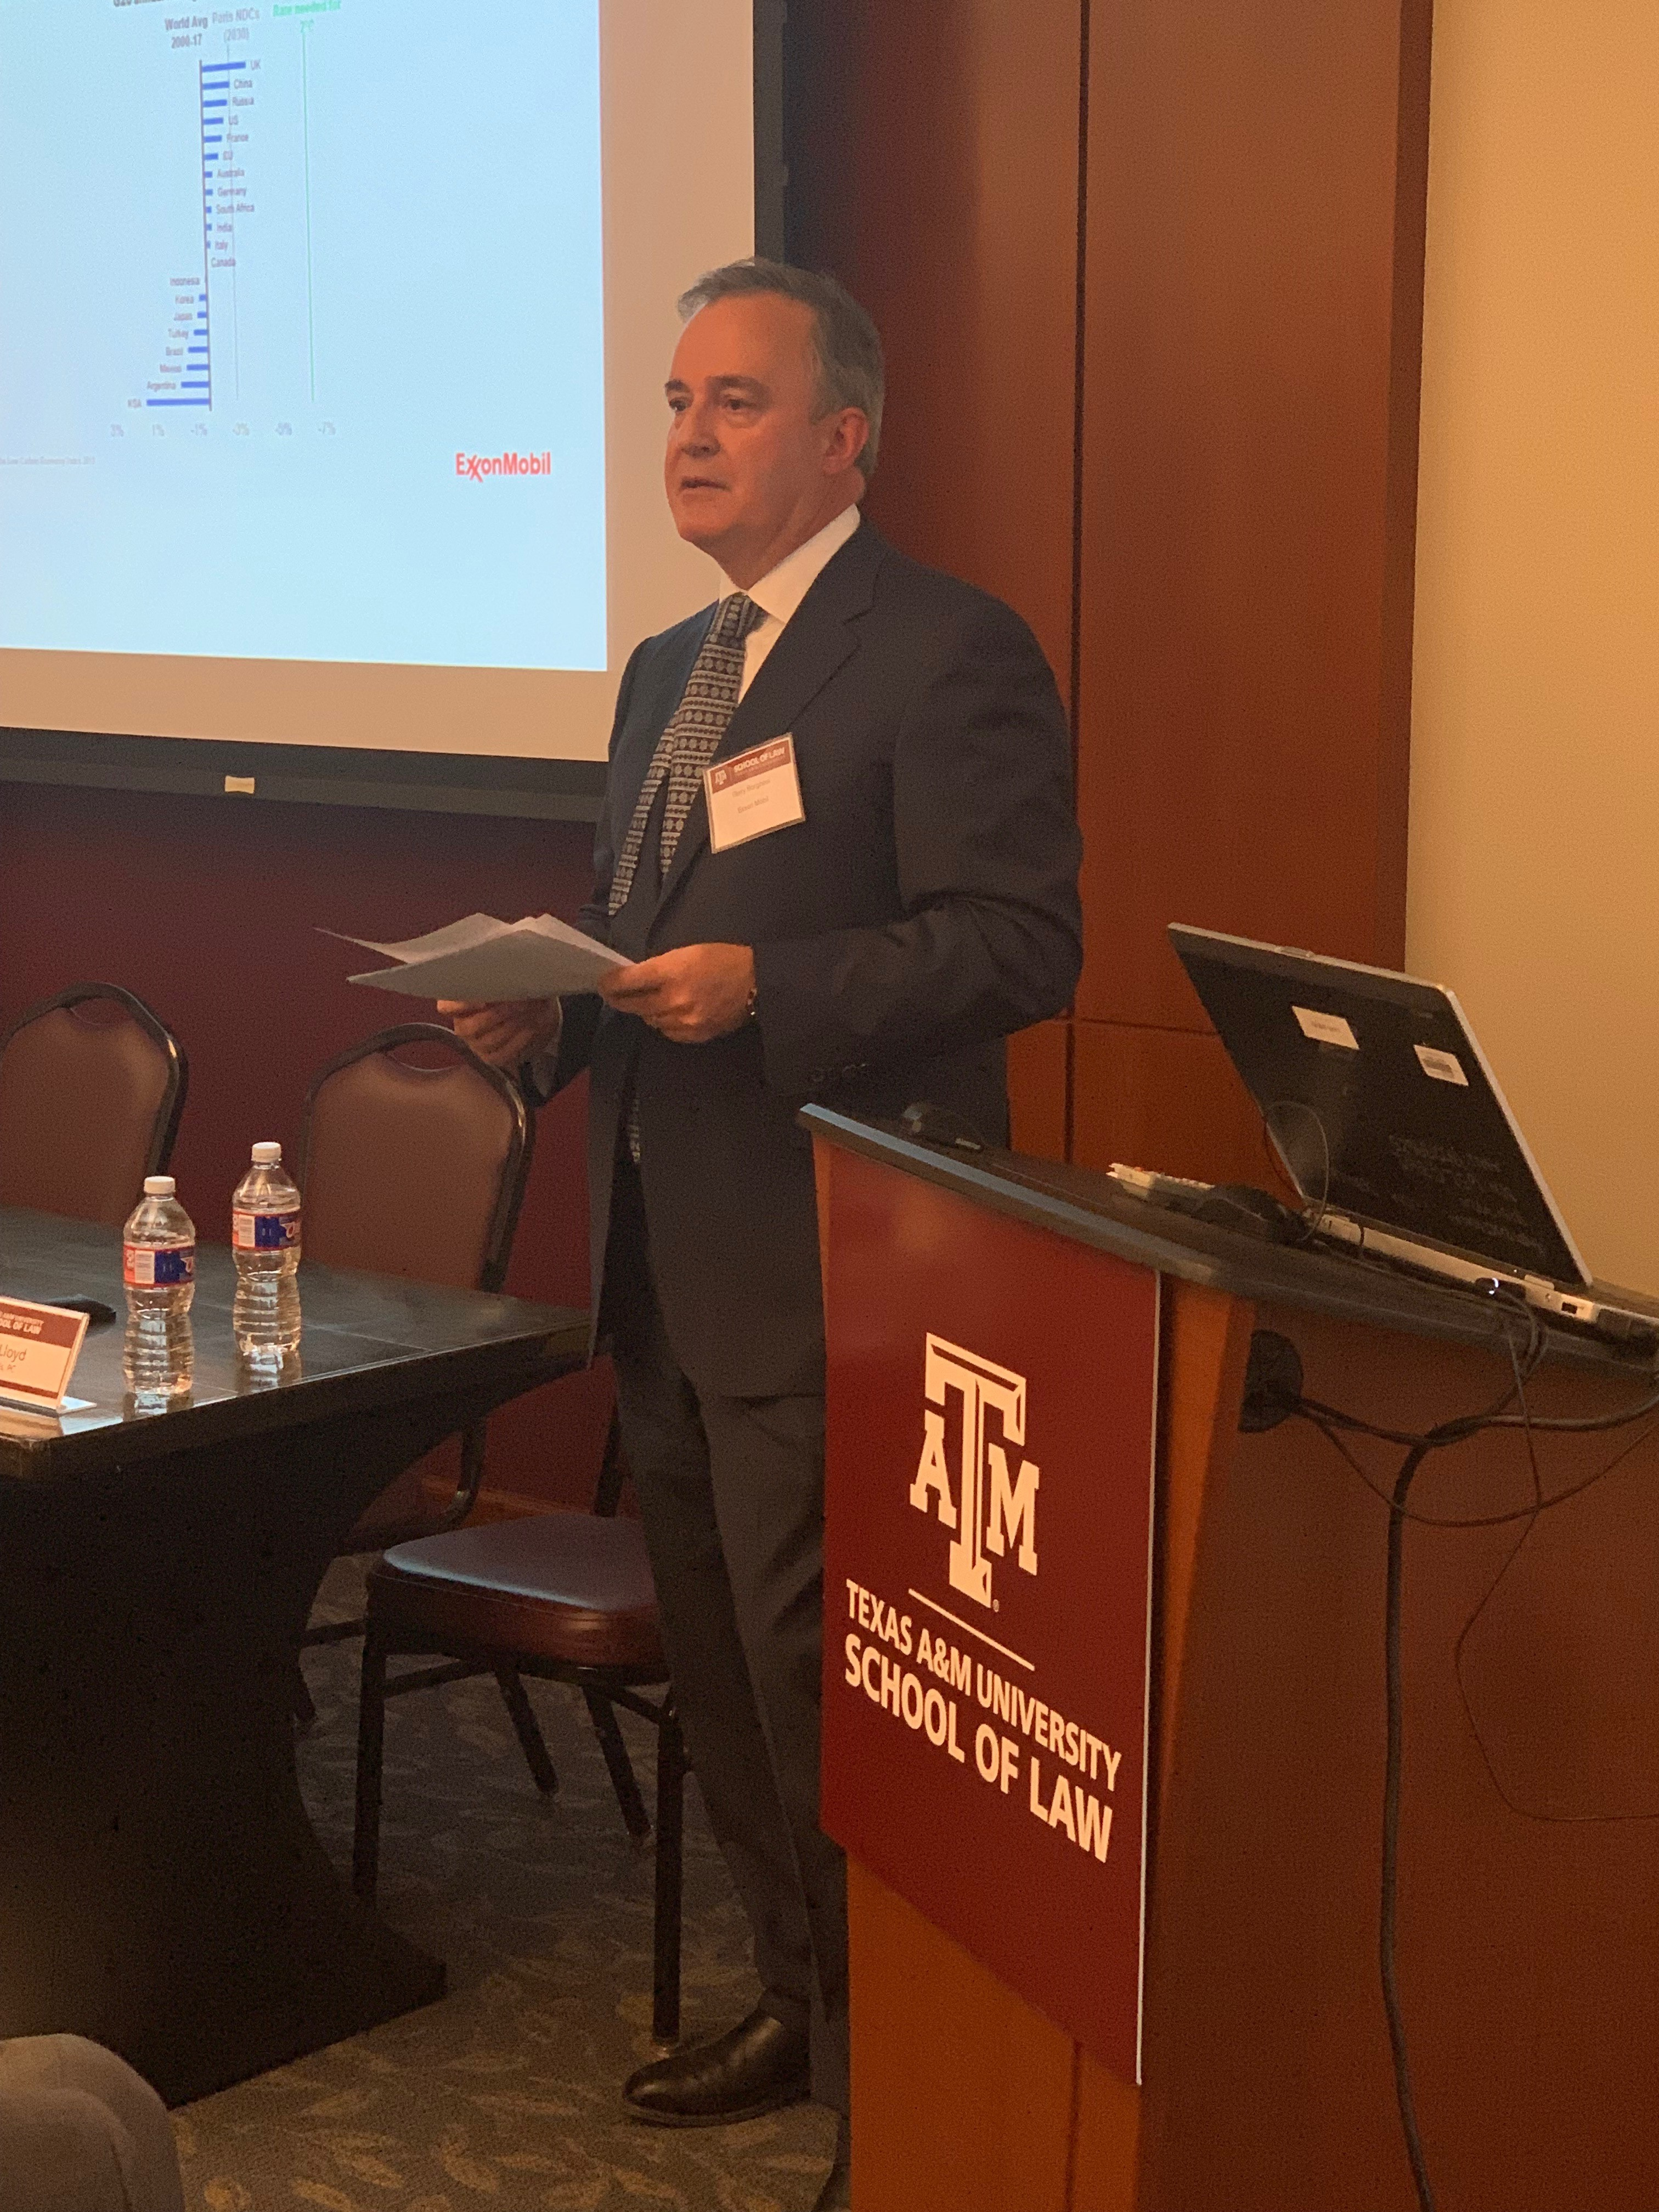 _ Lunchtime Keynote Speaker Gerry Borghesi with Exxon Mobil addresses 2019 Energy Law Symposium attendees-1